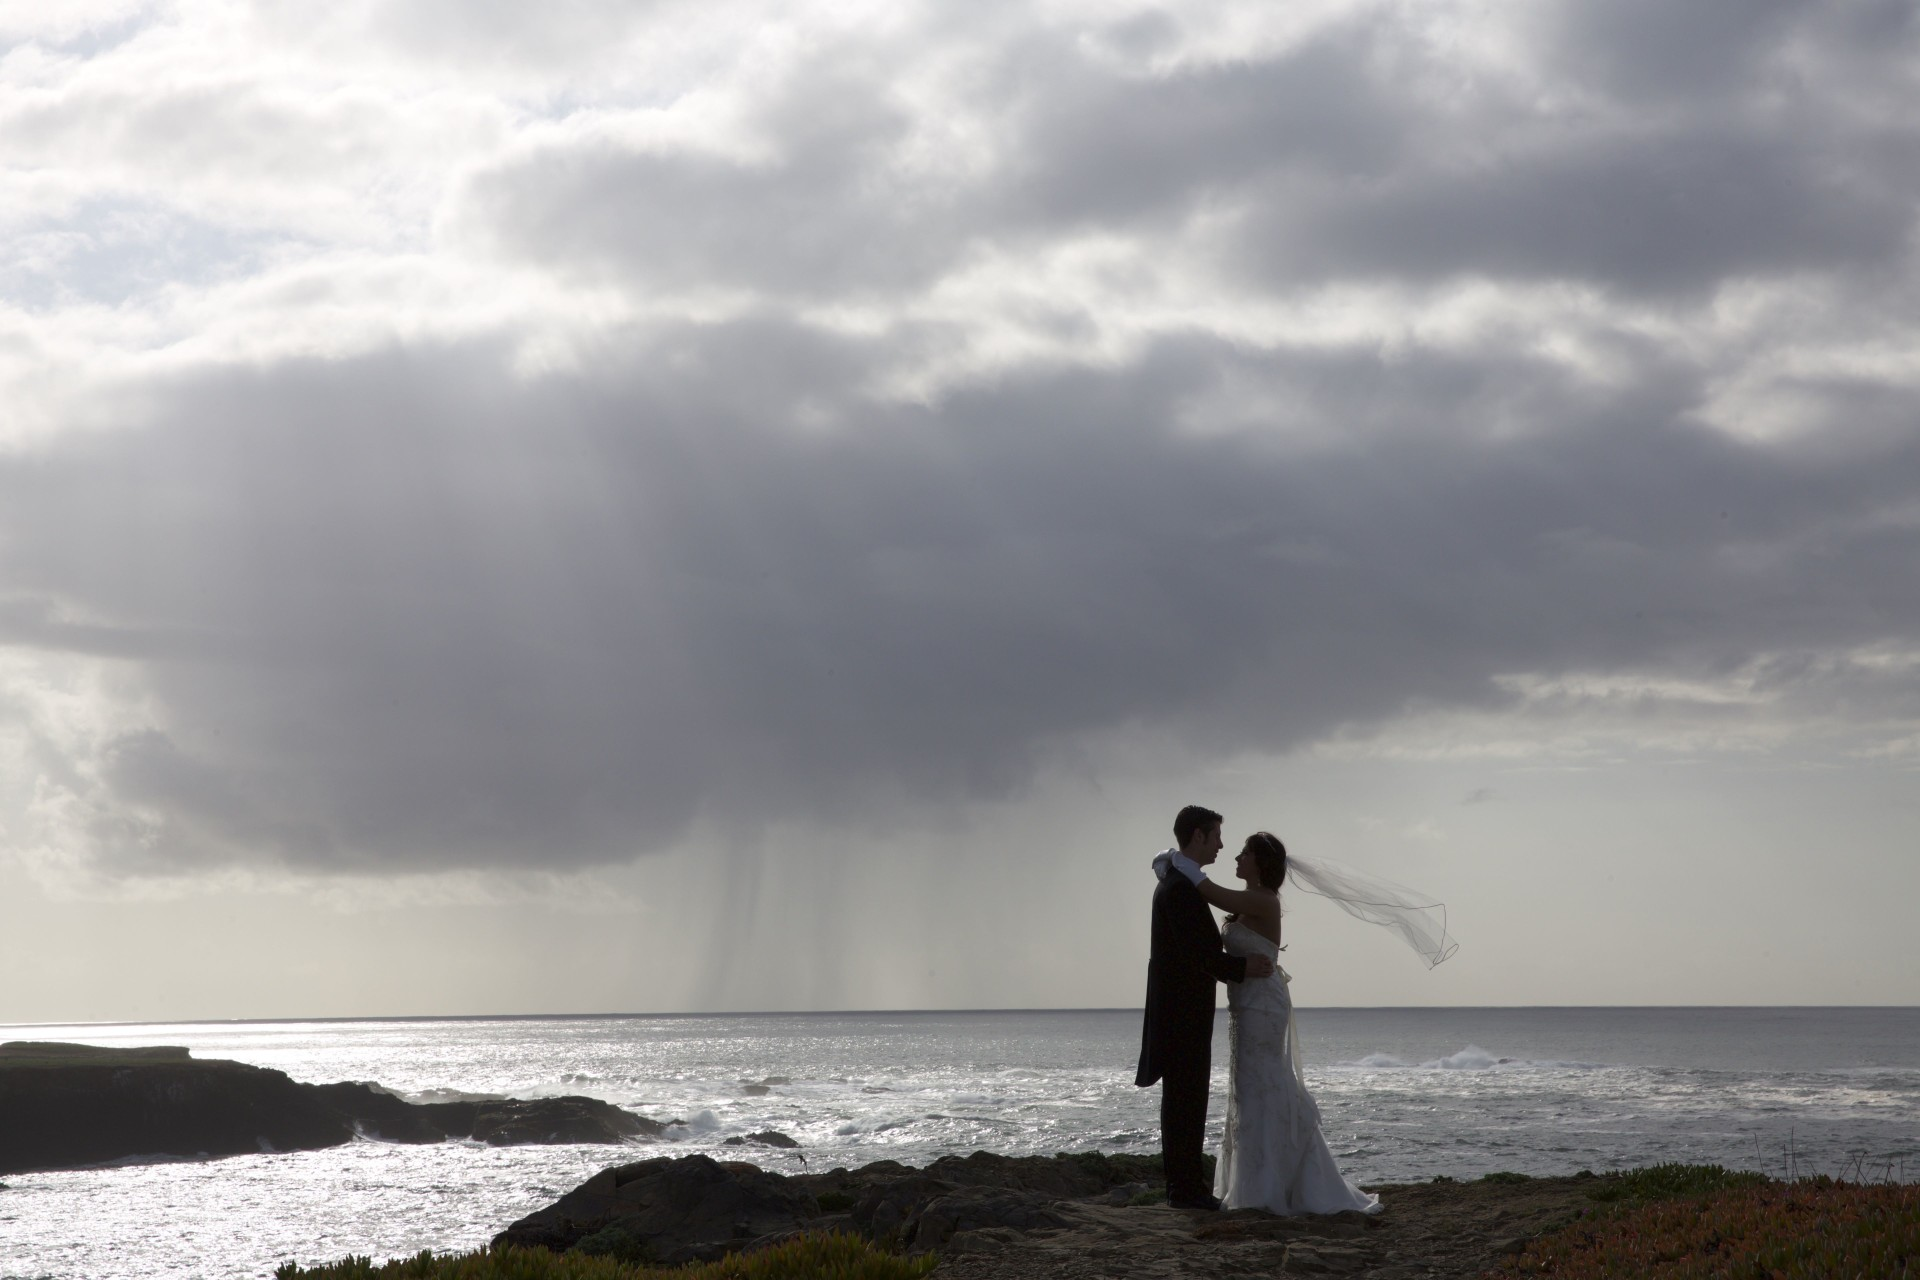 Mendocino Ocean Bluffs wedding - 24